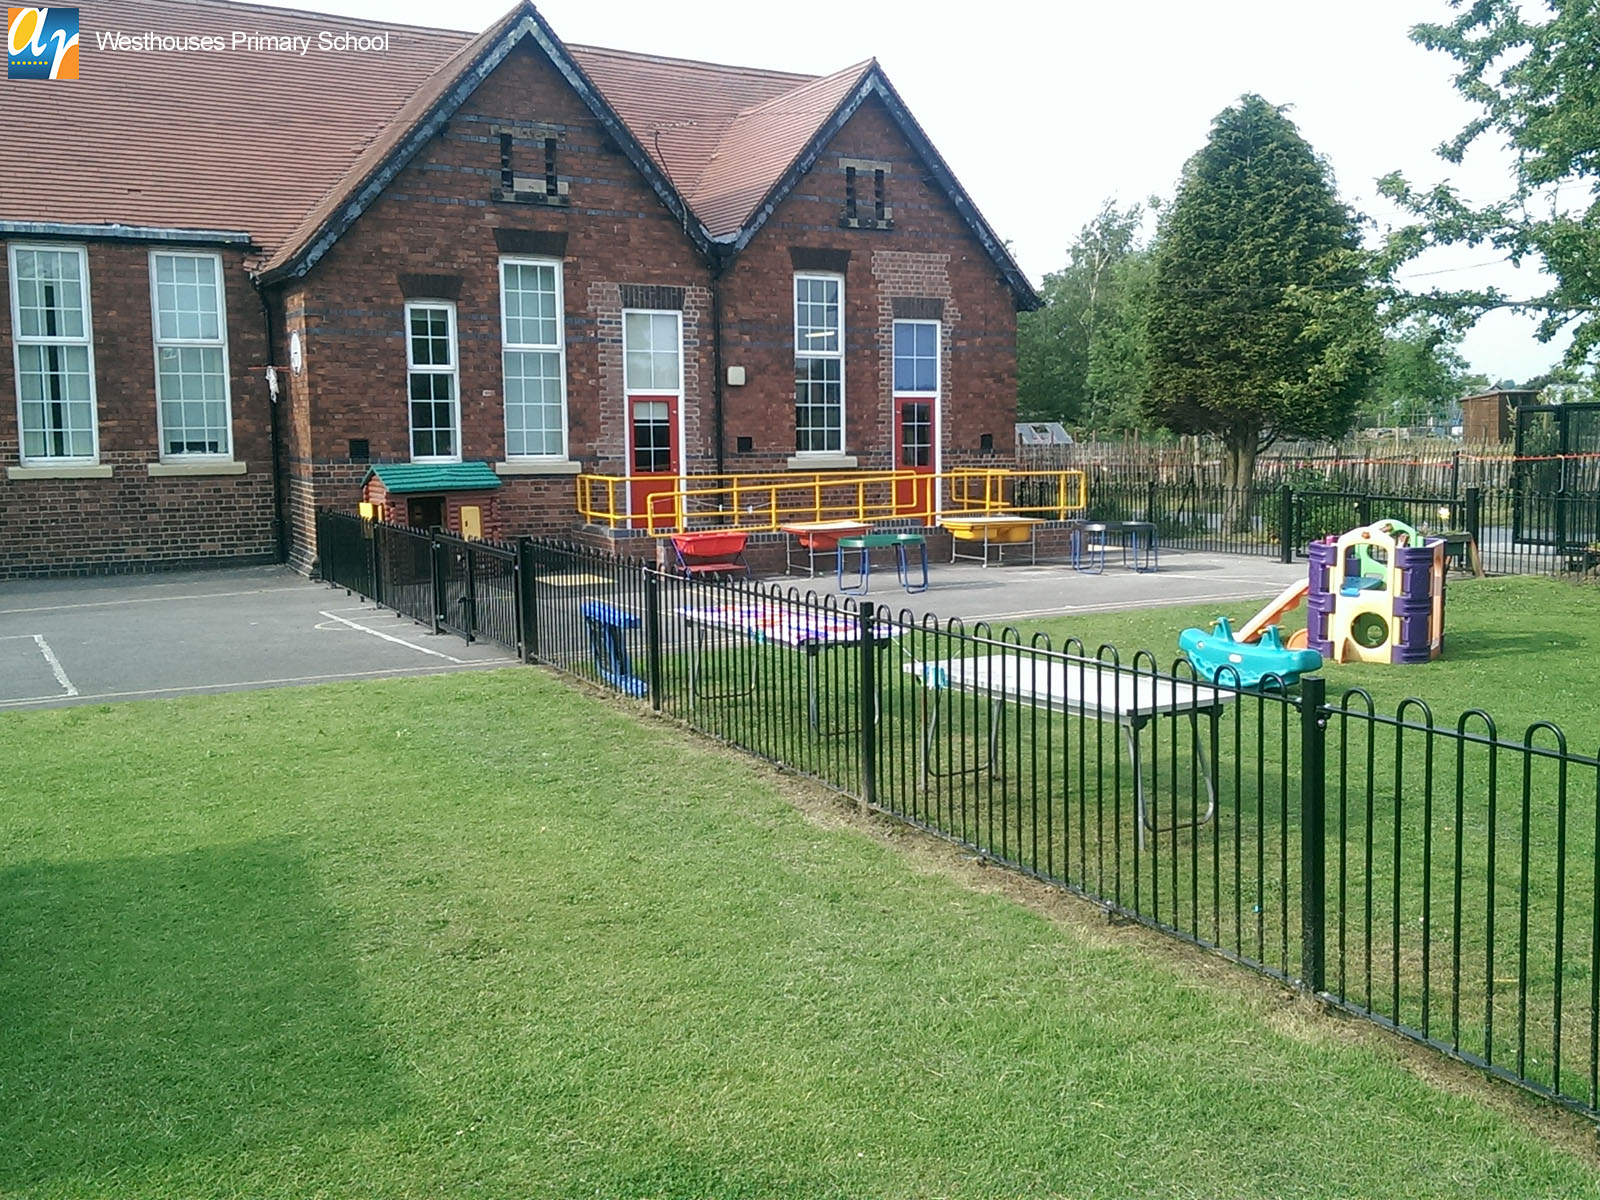 Westhouses Primary School Playspec bow top railings